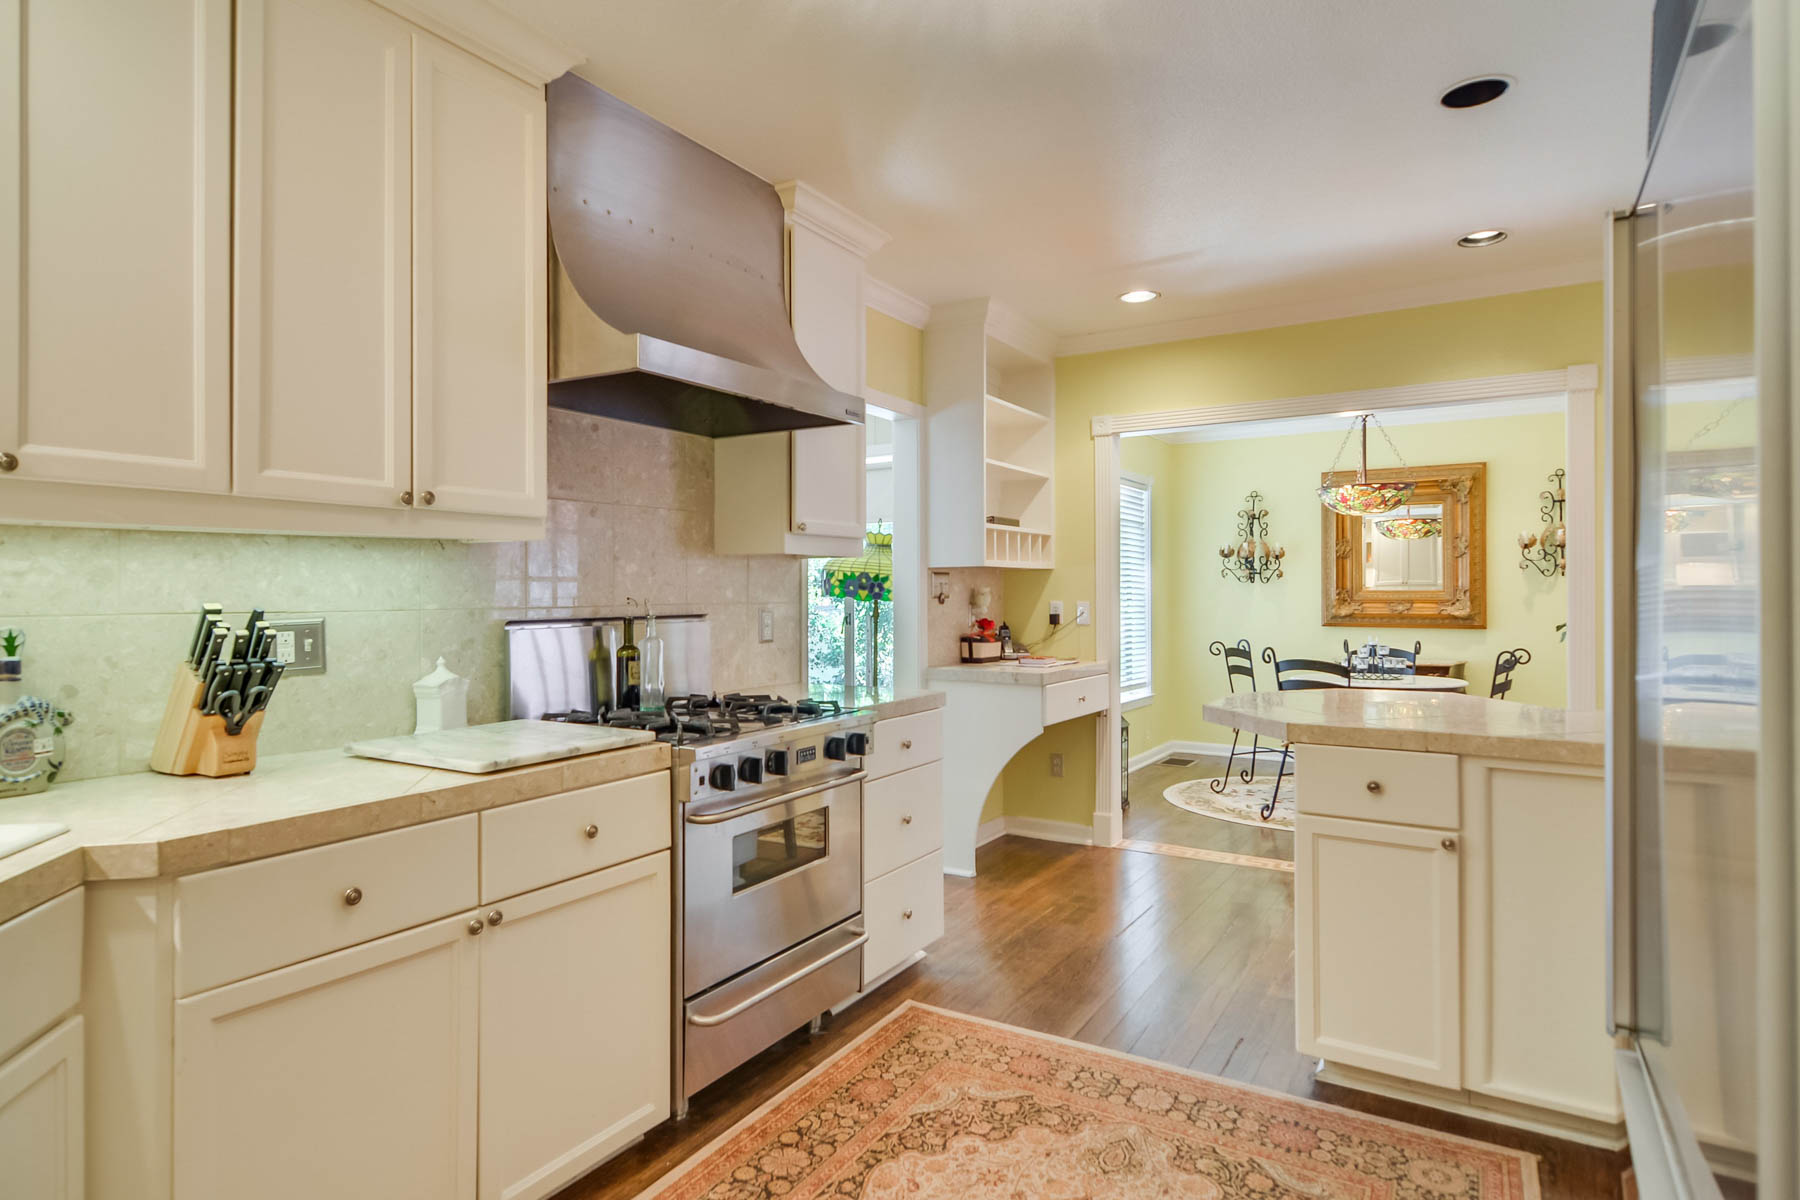 Additional photo for property listing at Ranch-Style Home in the Heart of Terrell Hills 109 Zambrano Rd San Antonio, Texas 78209 Estados Unidos